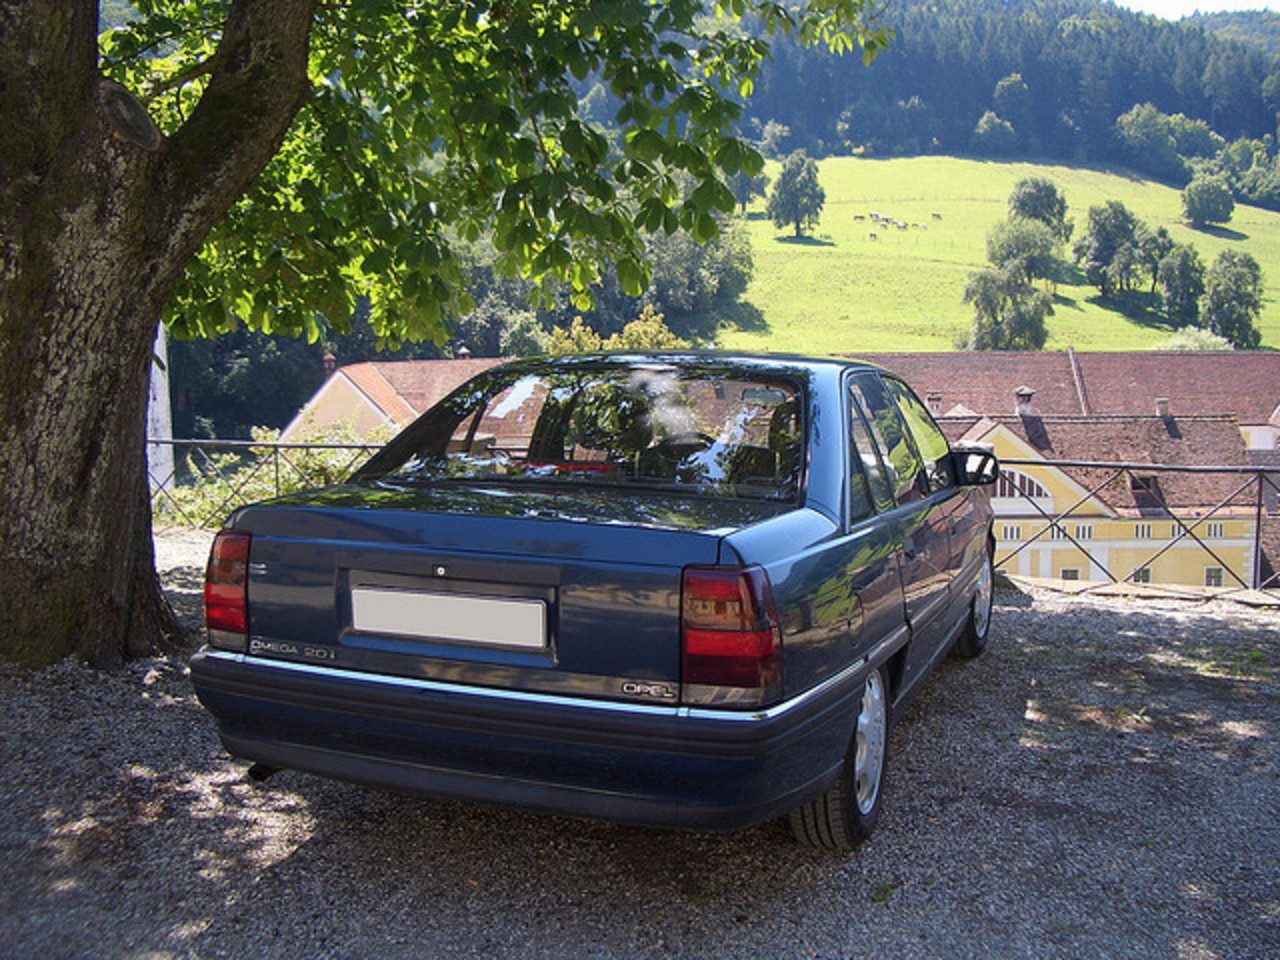 Opel Omega A | Flickr - Photo Sharing!